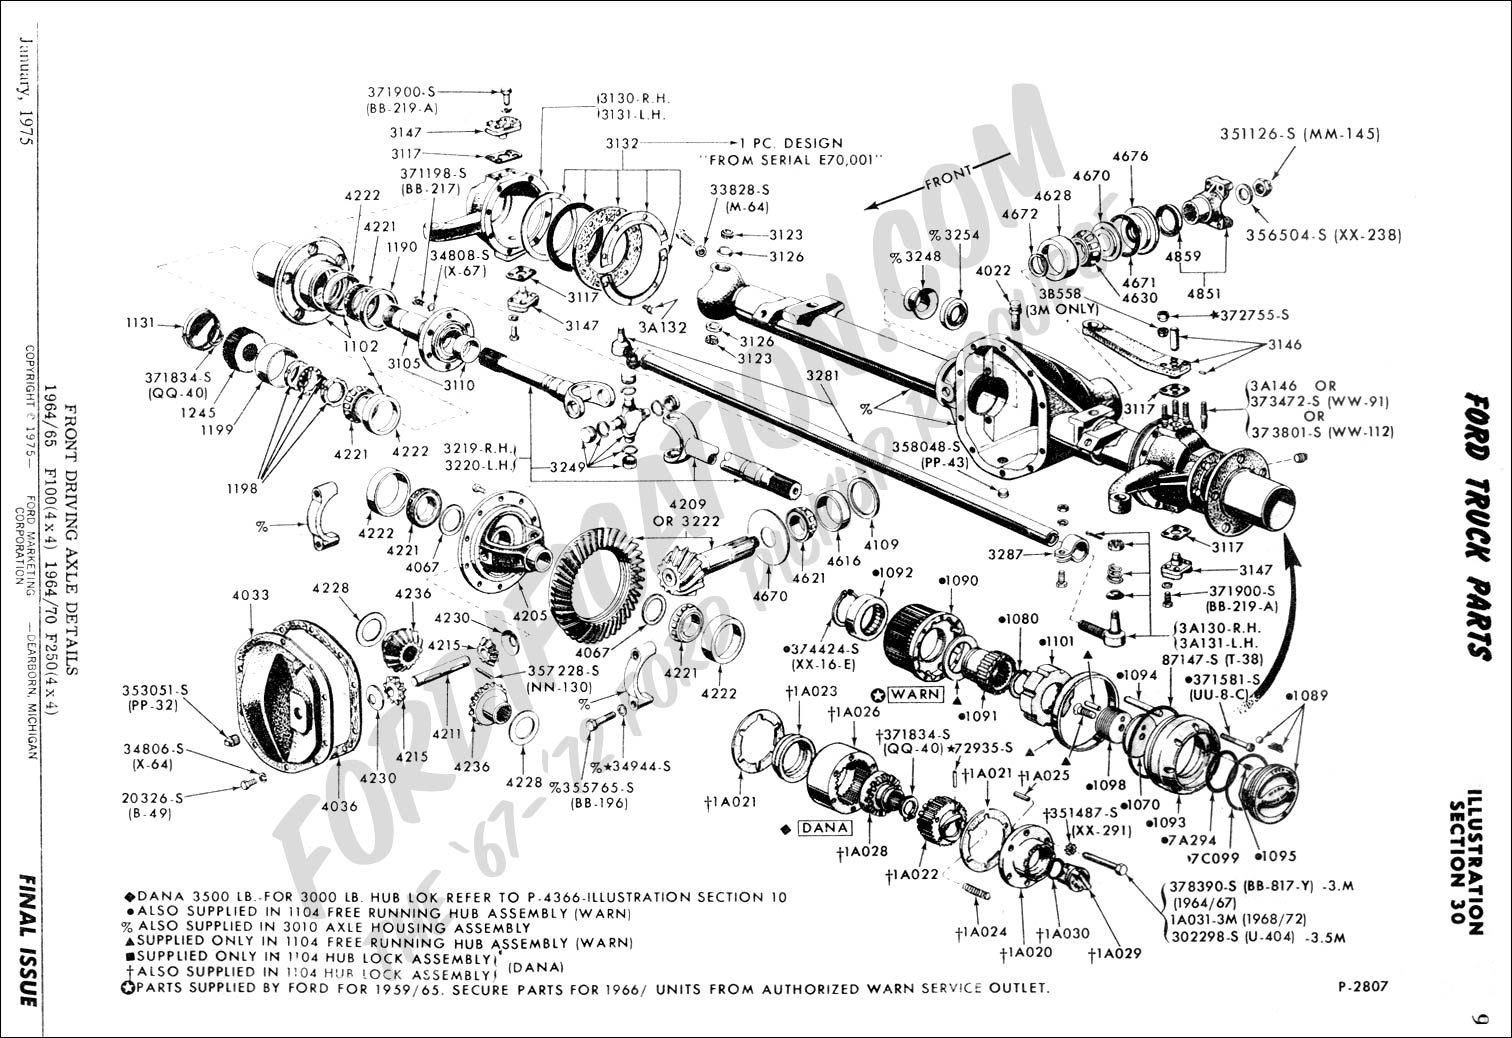 Schematics_a on 2007 Ford Escape Parts List